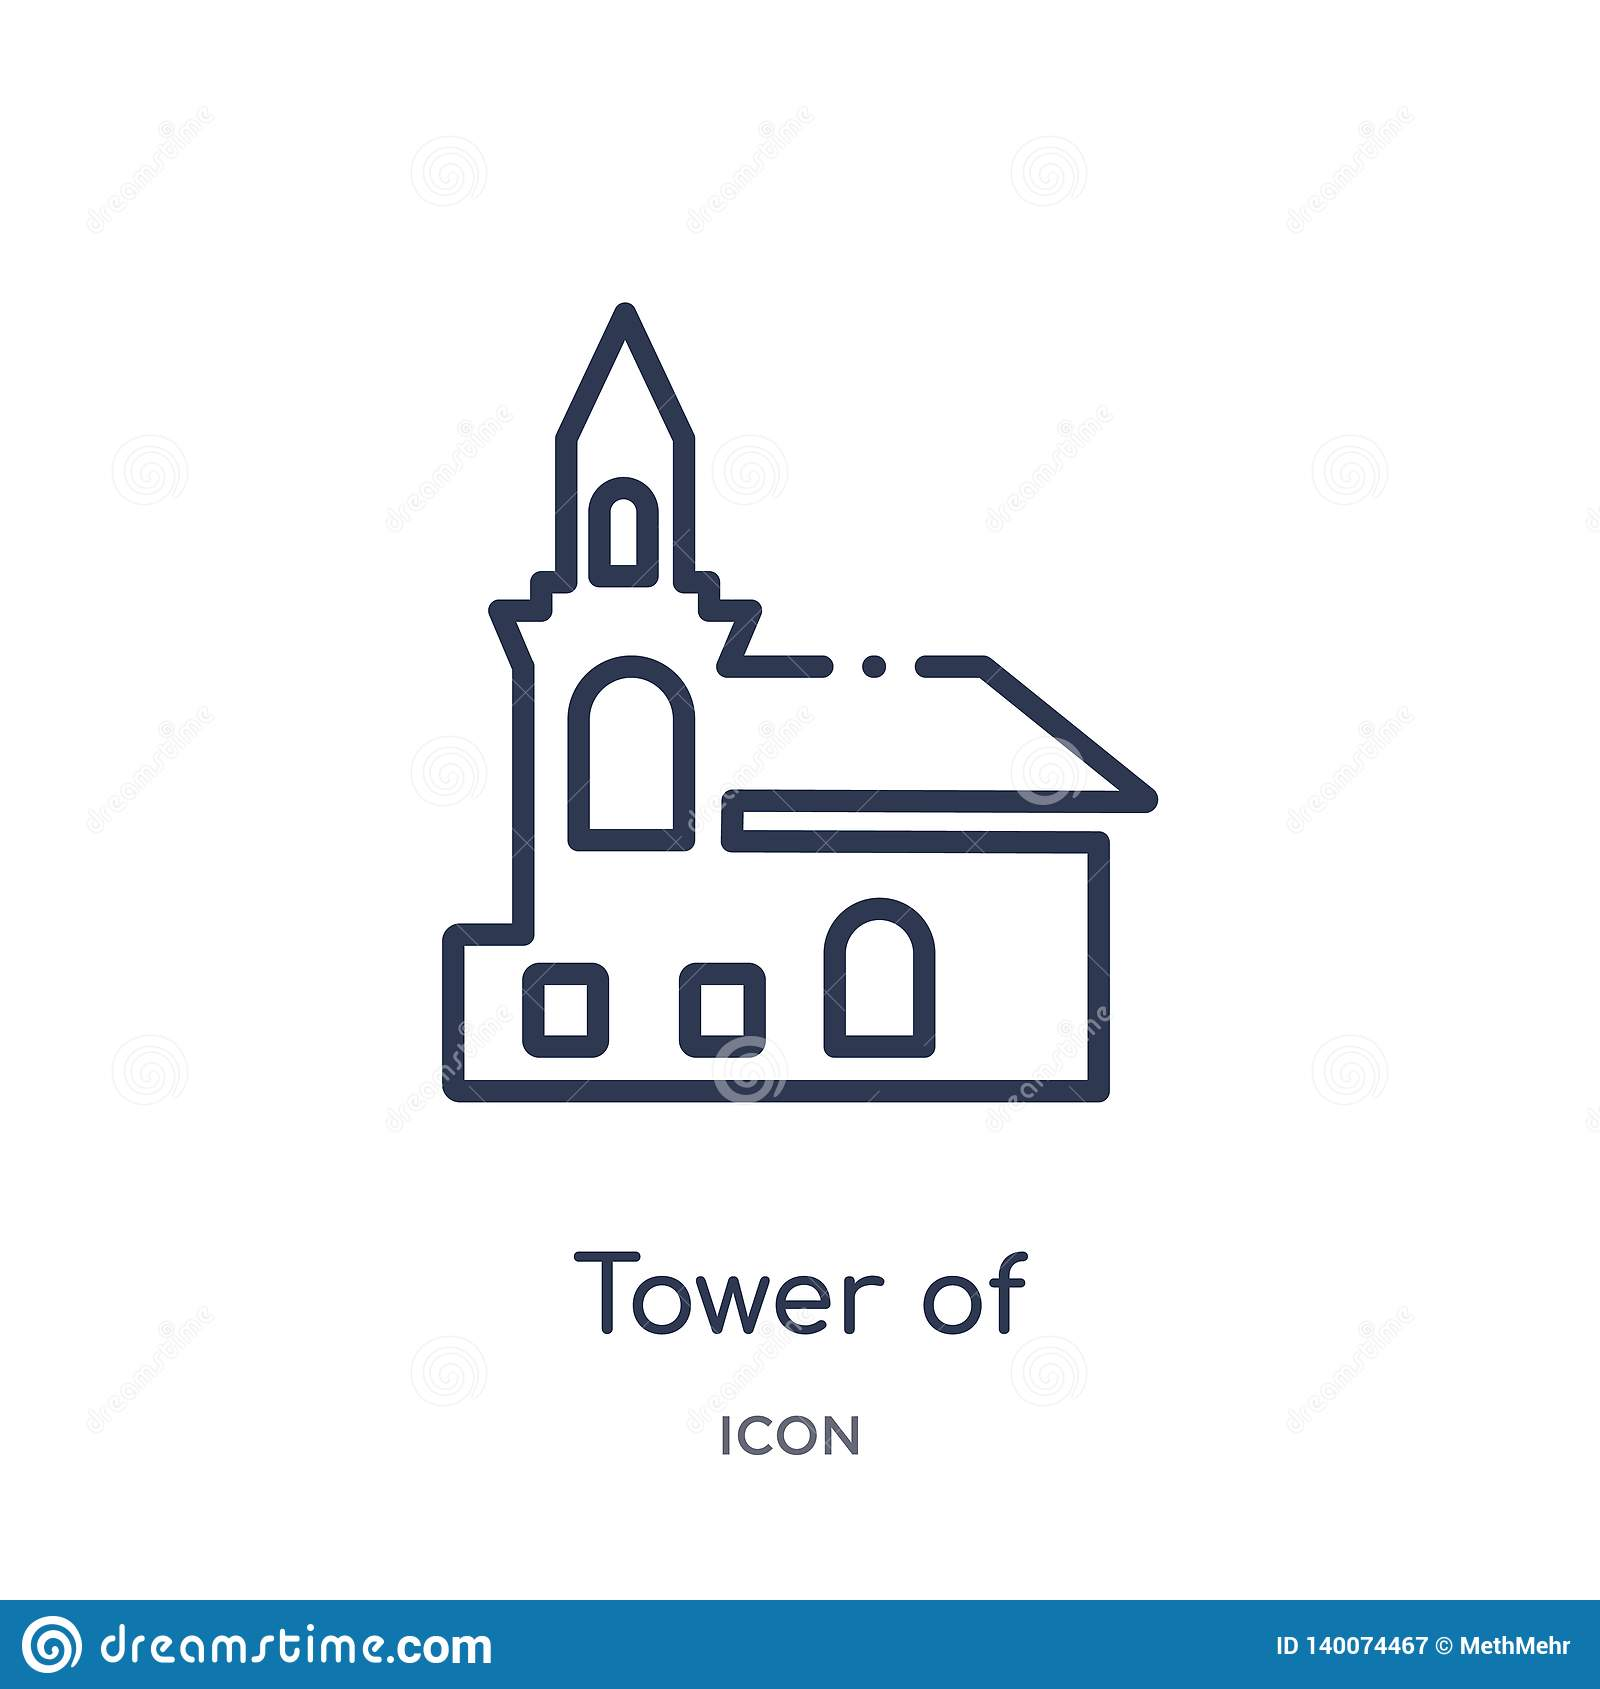 tower of nevyansk in russia icon from monuments outline collection. Thin line tower of nevyansk in russia icon isolated on white